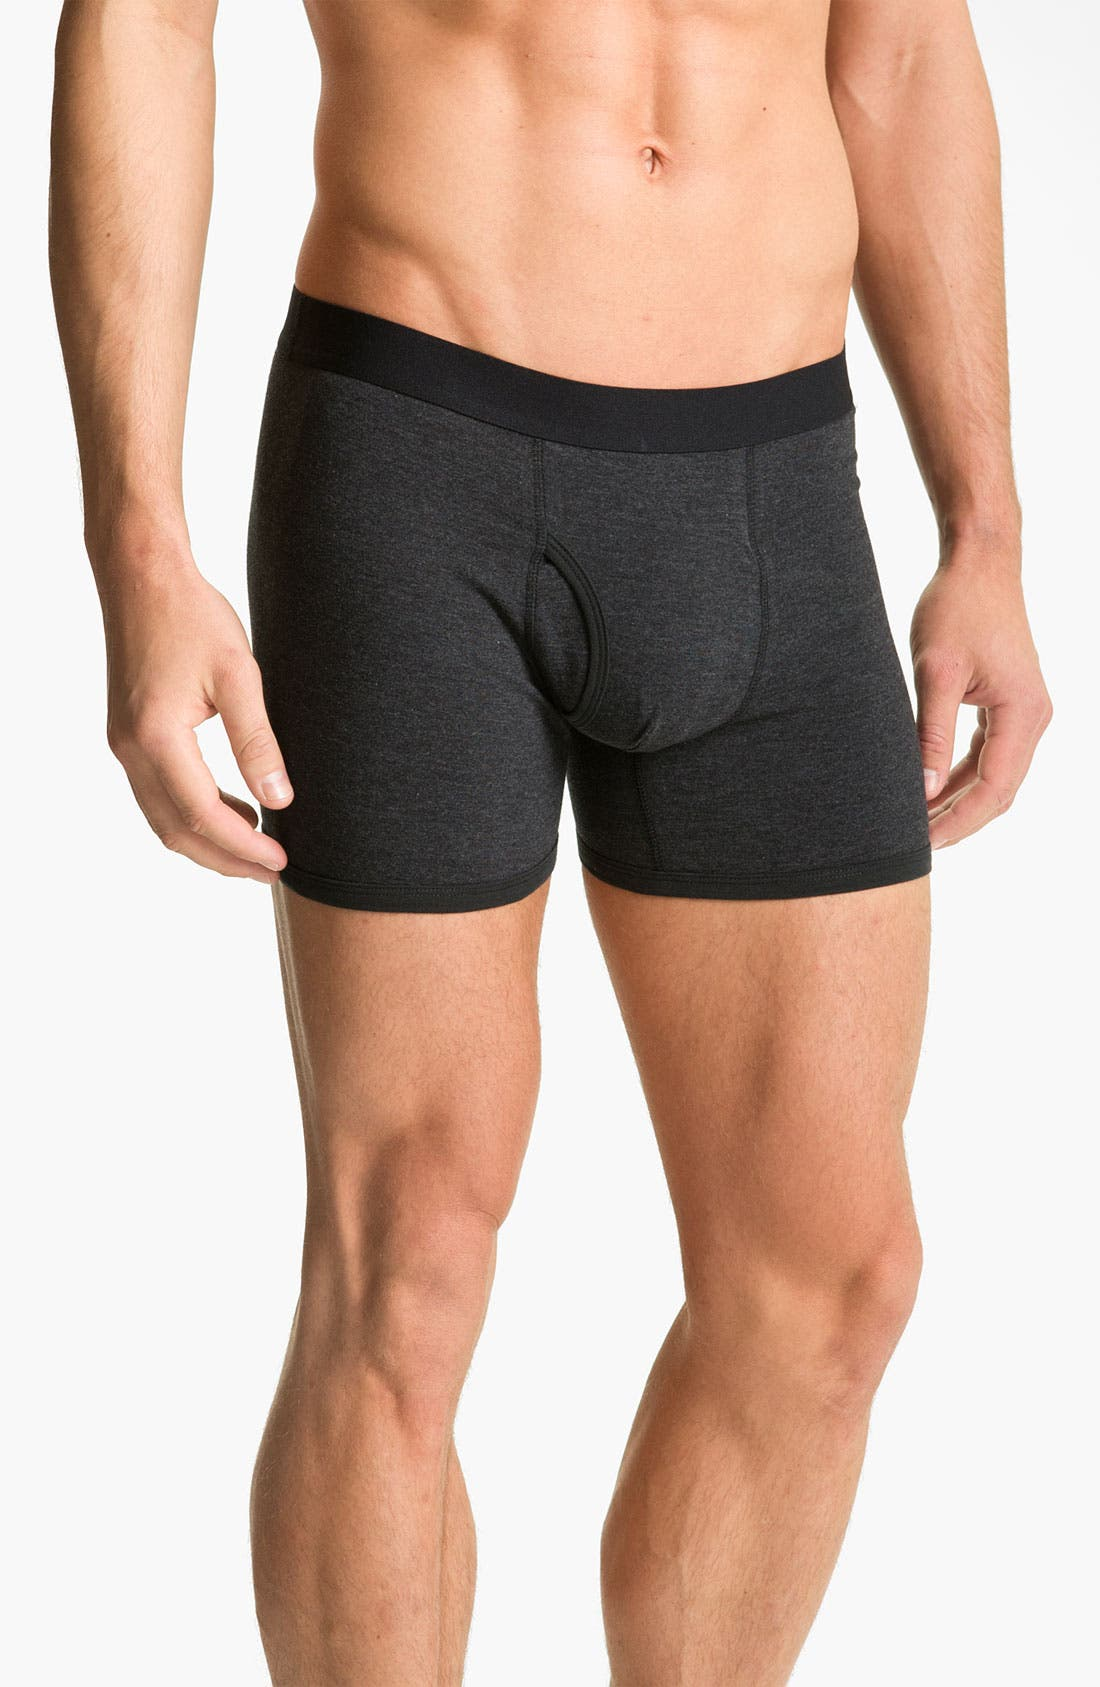 Alternate Image 1 Selected - Basic Underwear Solid Boxer Briefs (3-Pack)